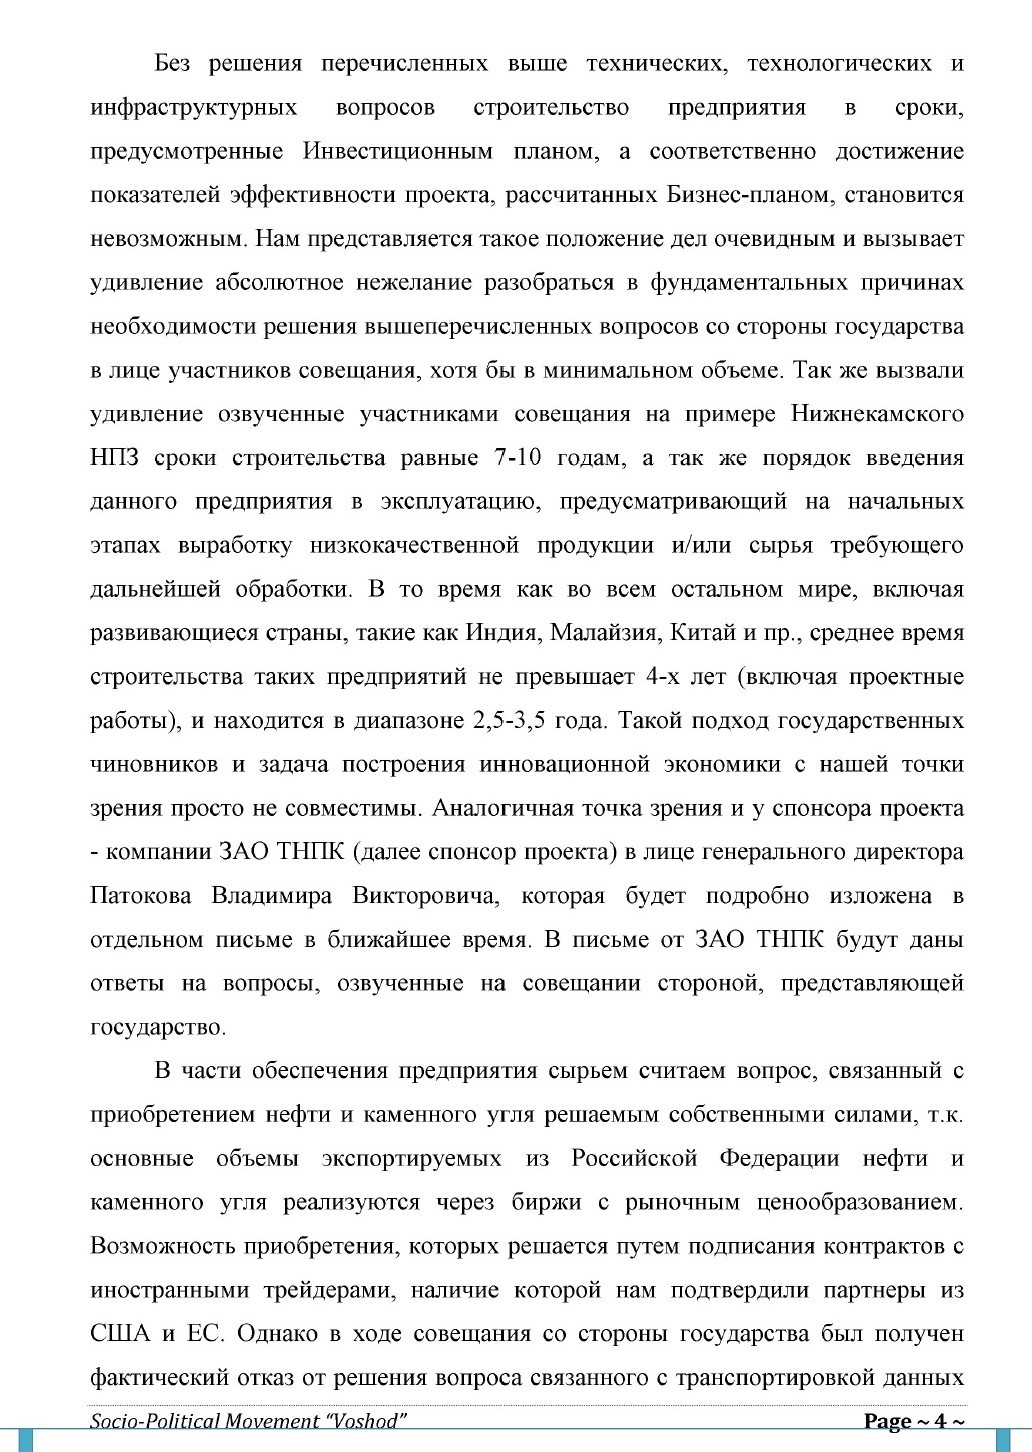 Letter to President of Russia N37-4